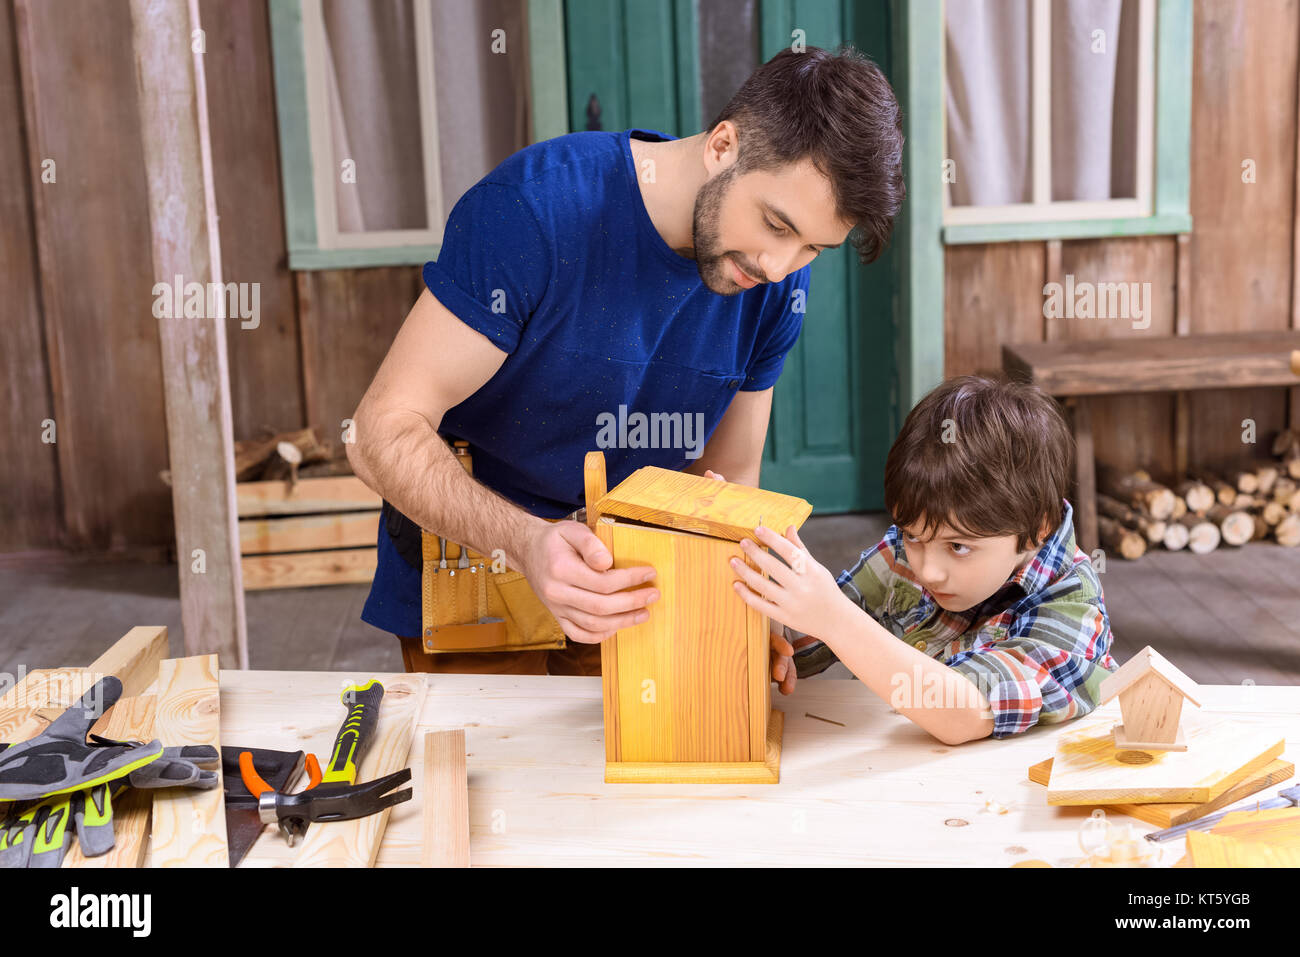 Concentrated father and son making wooden birdhouse together - Stock Image